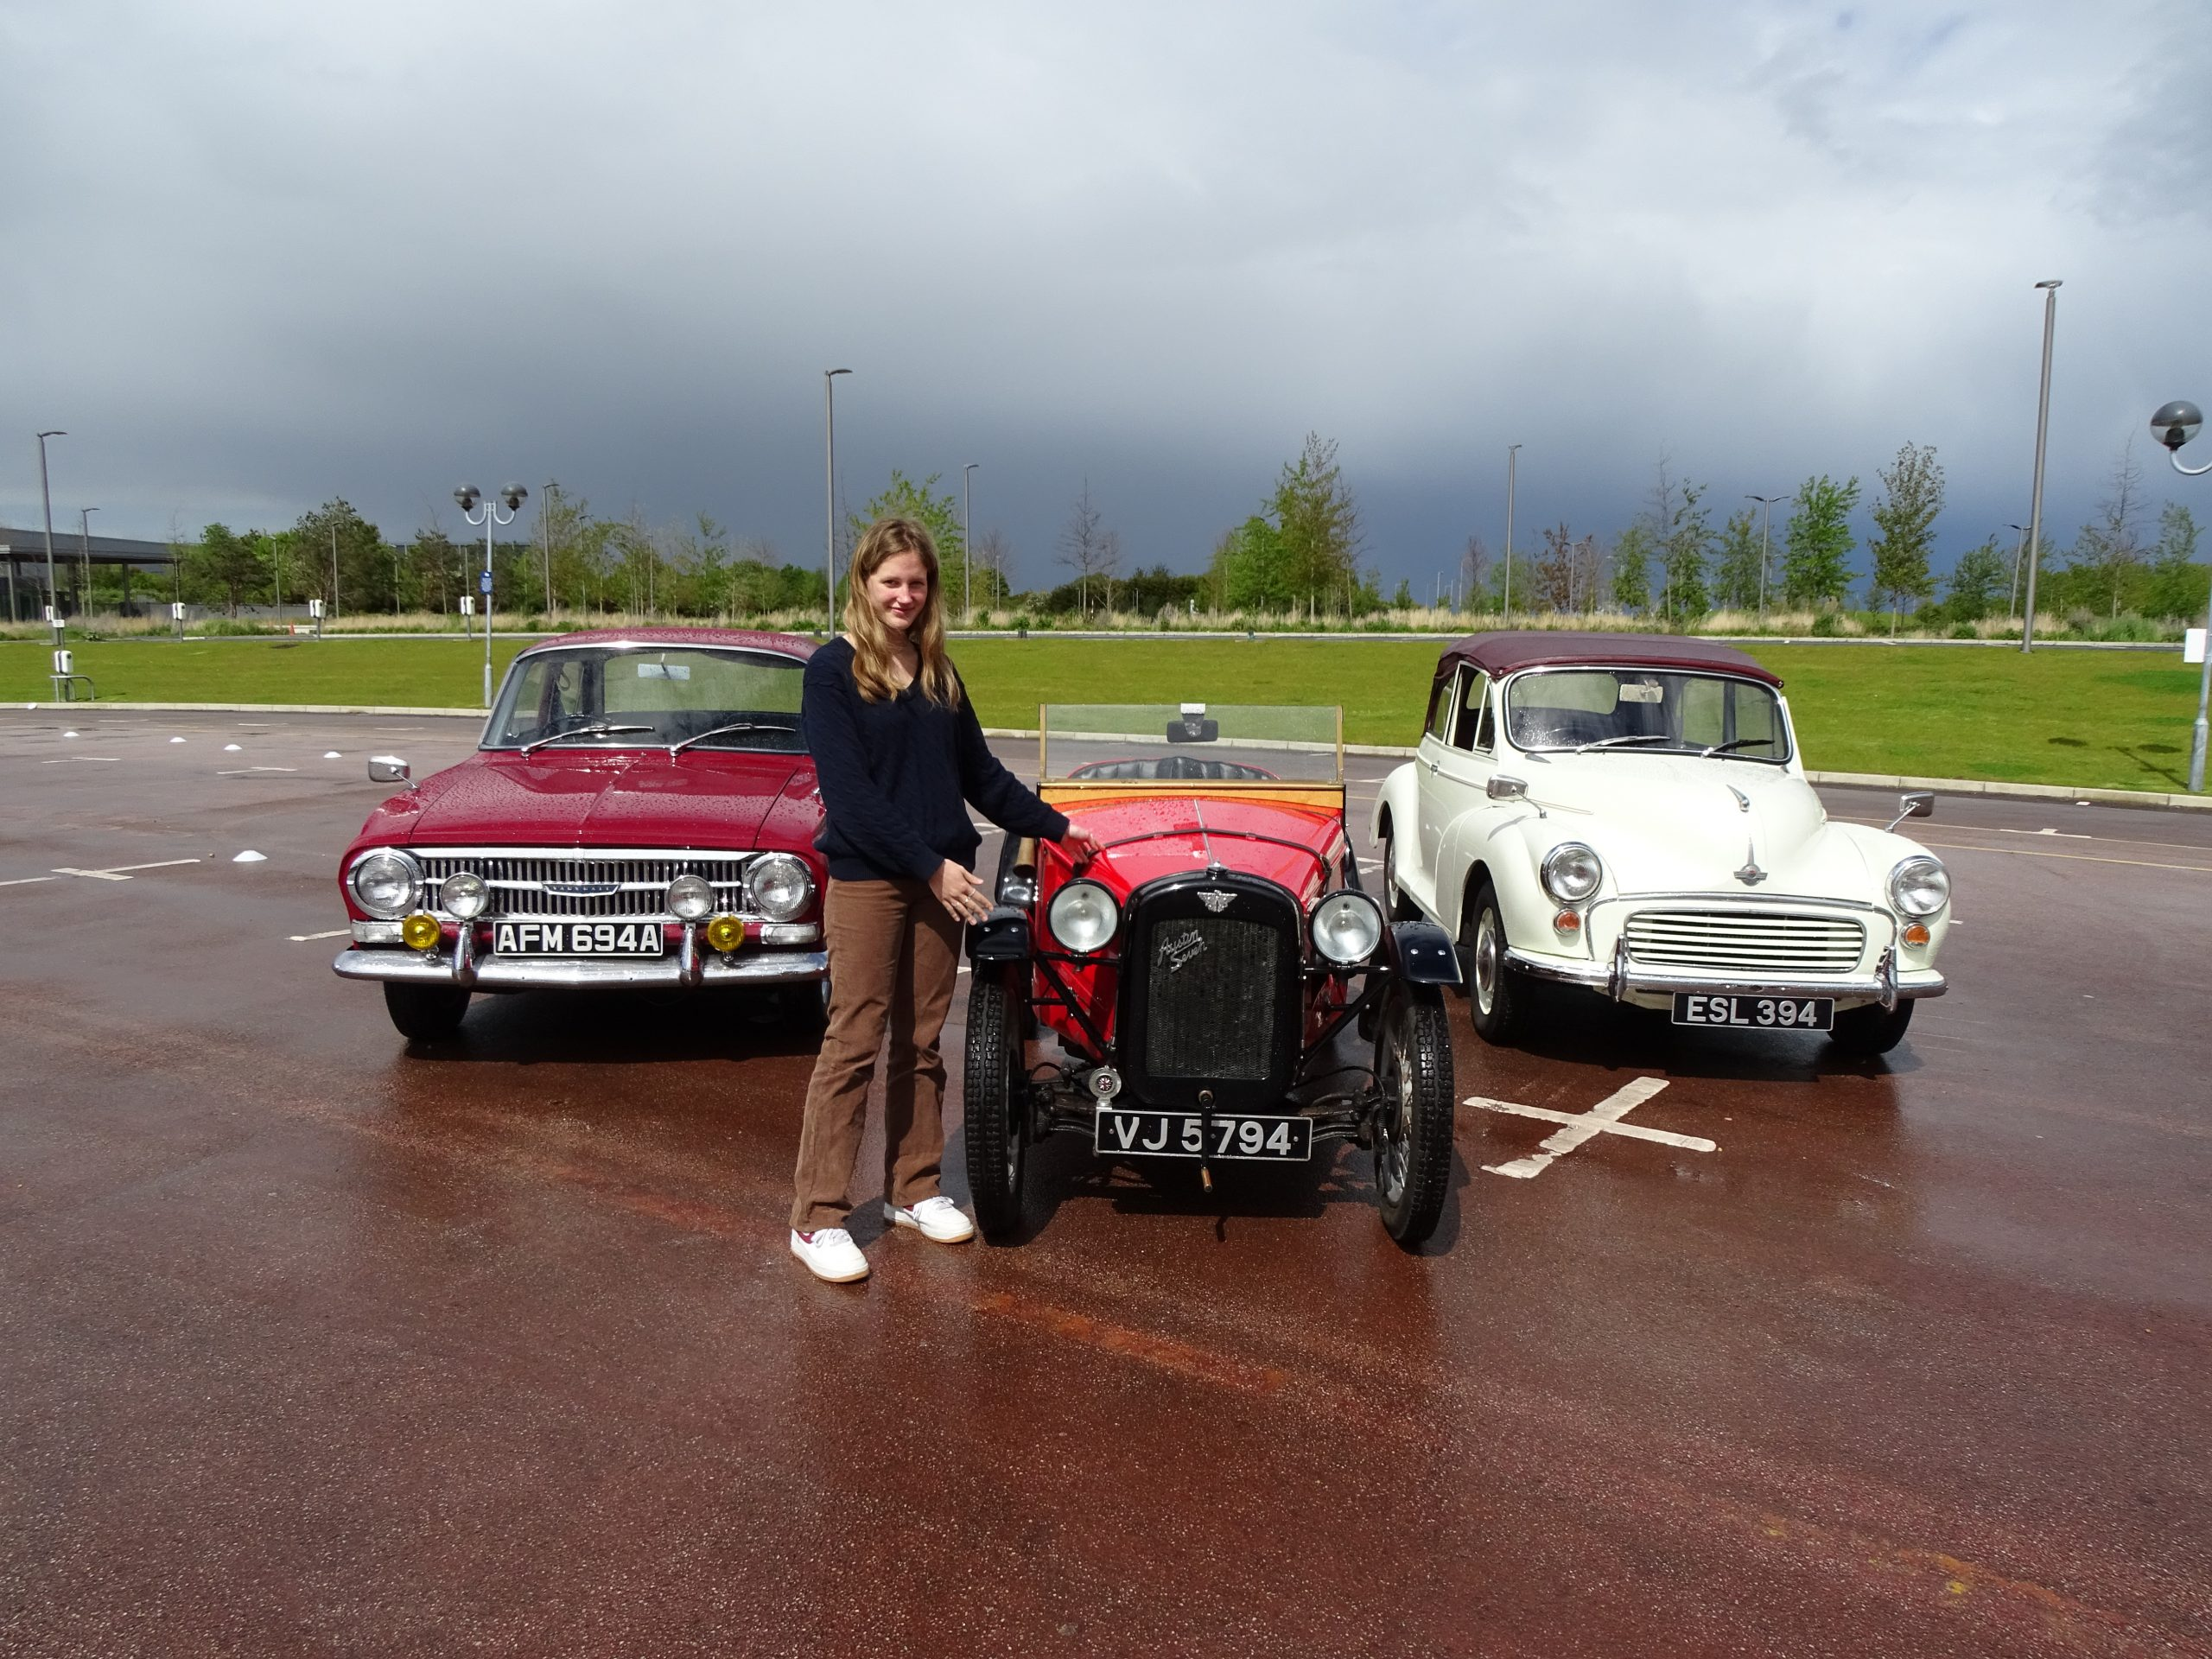 Start them old: Learning to drive in classic cars